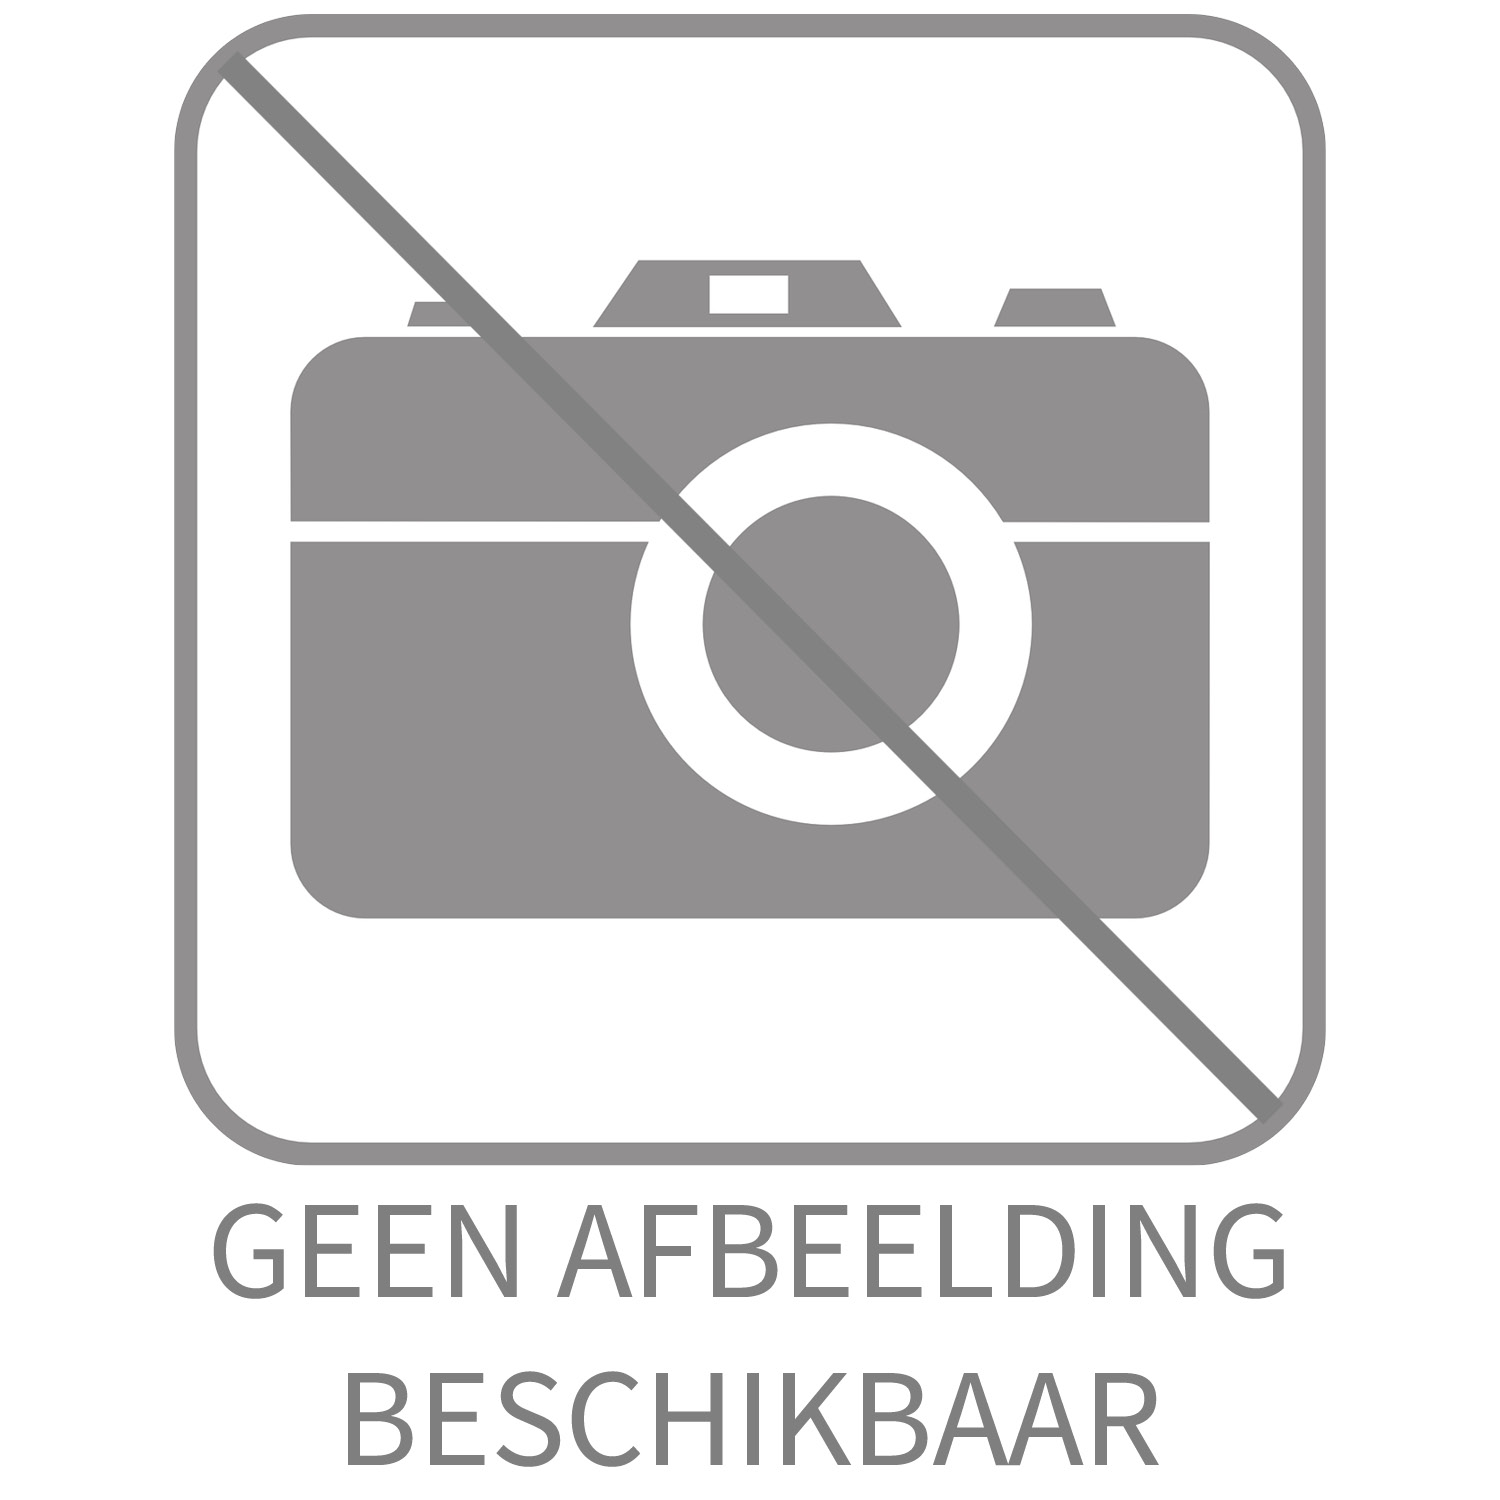 diam 180 mm parkeerverbod van Pickup (pictogram)